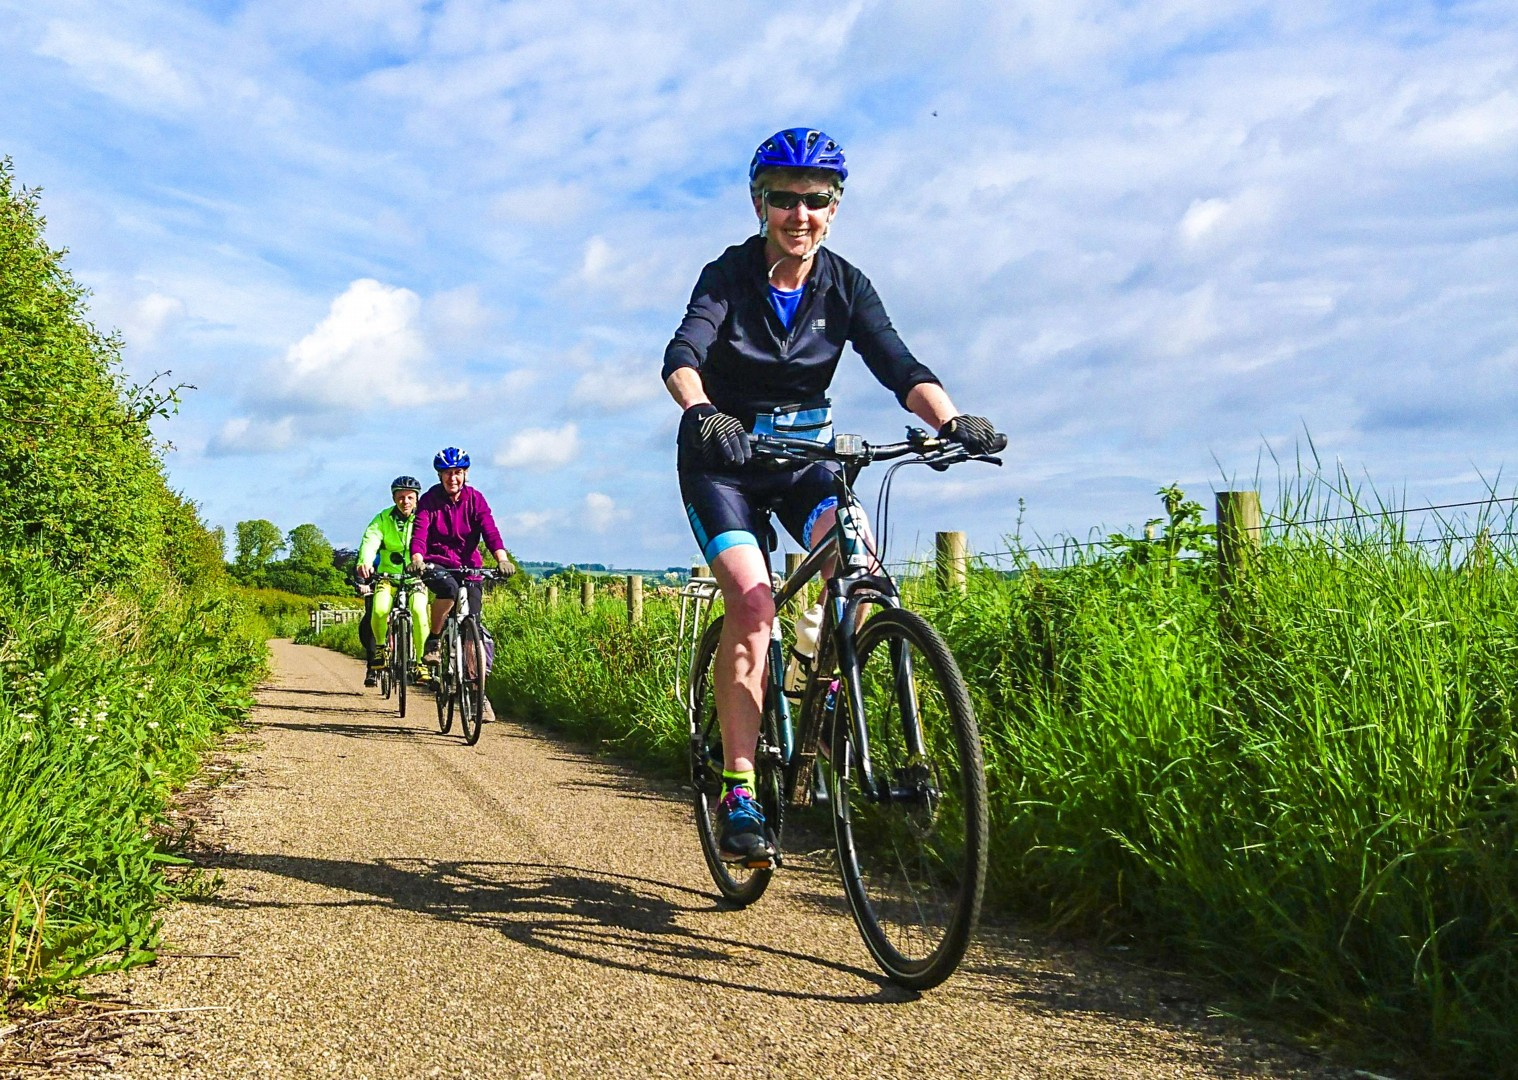 happy-cycling-for-all-ages-family-friends-north-britain-newcastle-alnmouth.jpg - UK - Northumberland - Alnmouth - Self-Guided Leisure Cycling Holiday - Leisure Cycling